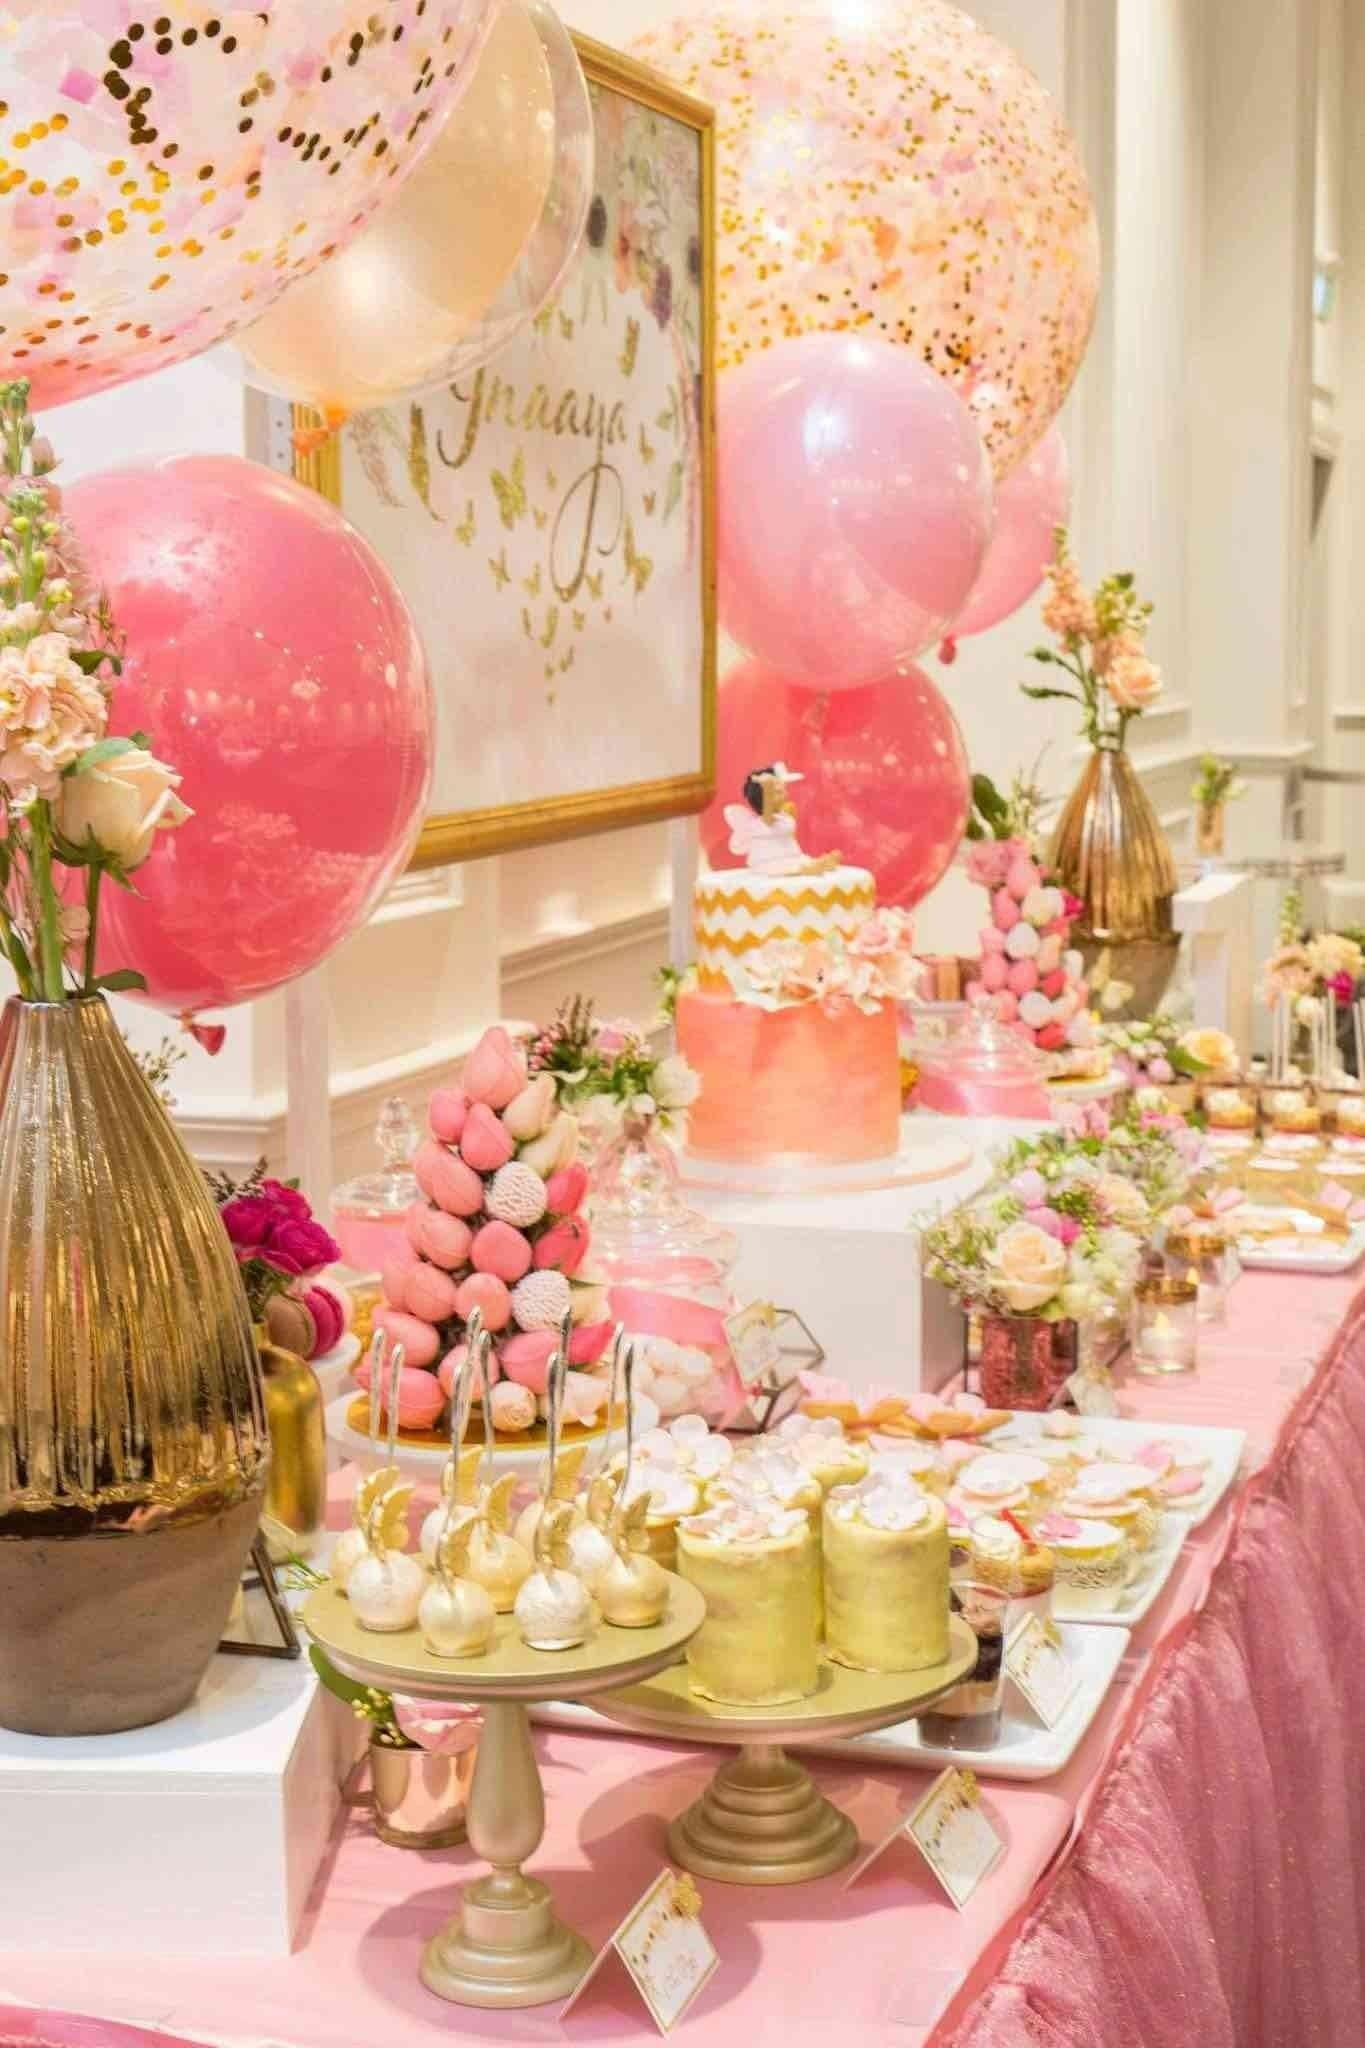 bridal shower 101: everything you need to know | melbourne, bridal